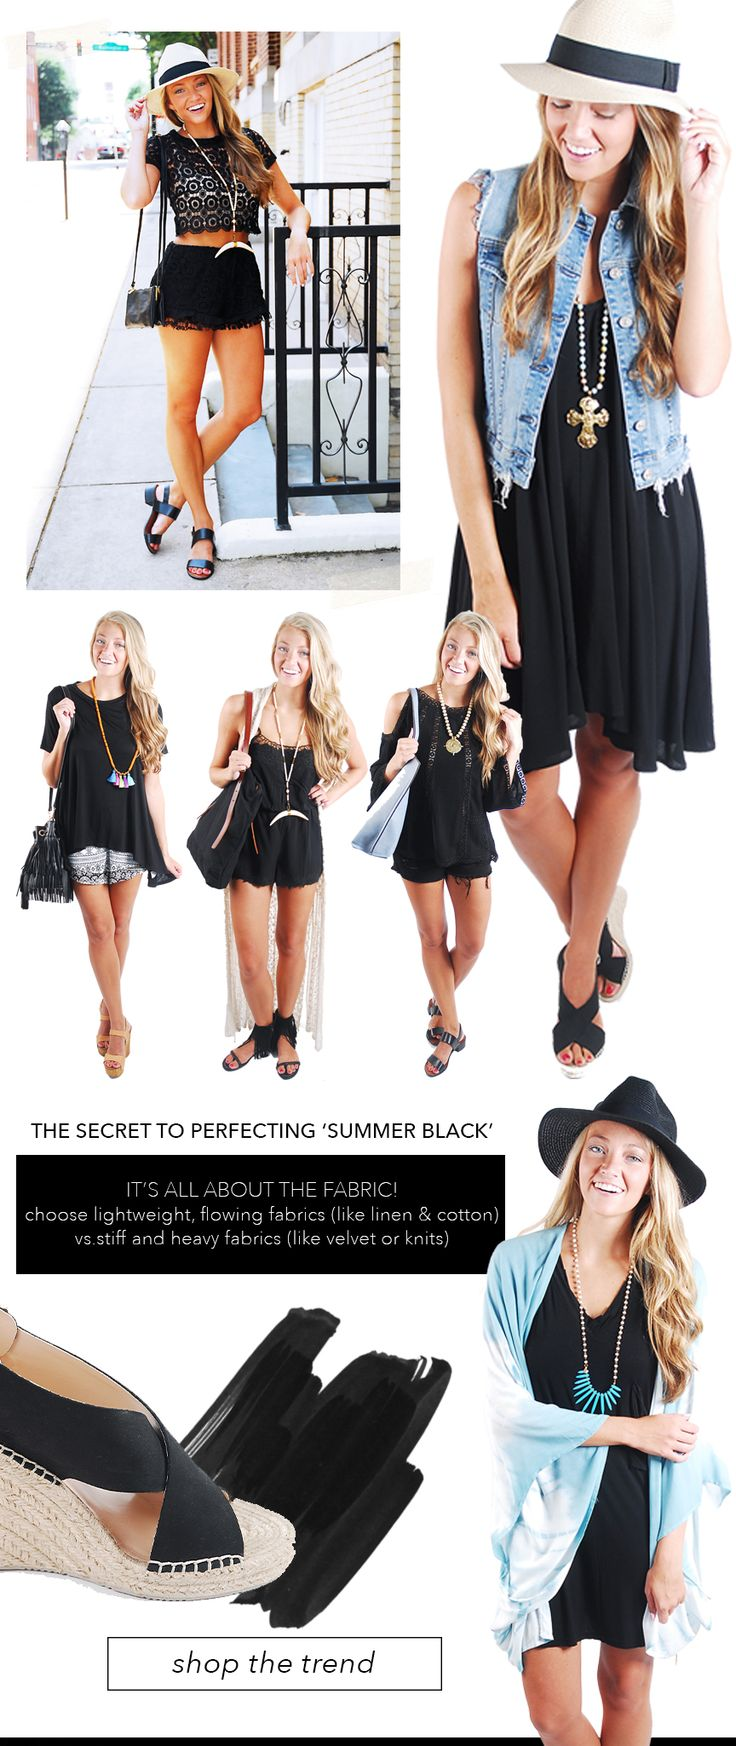 How to rock the Summer Black trend!